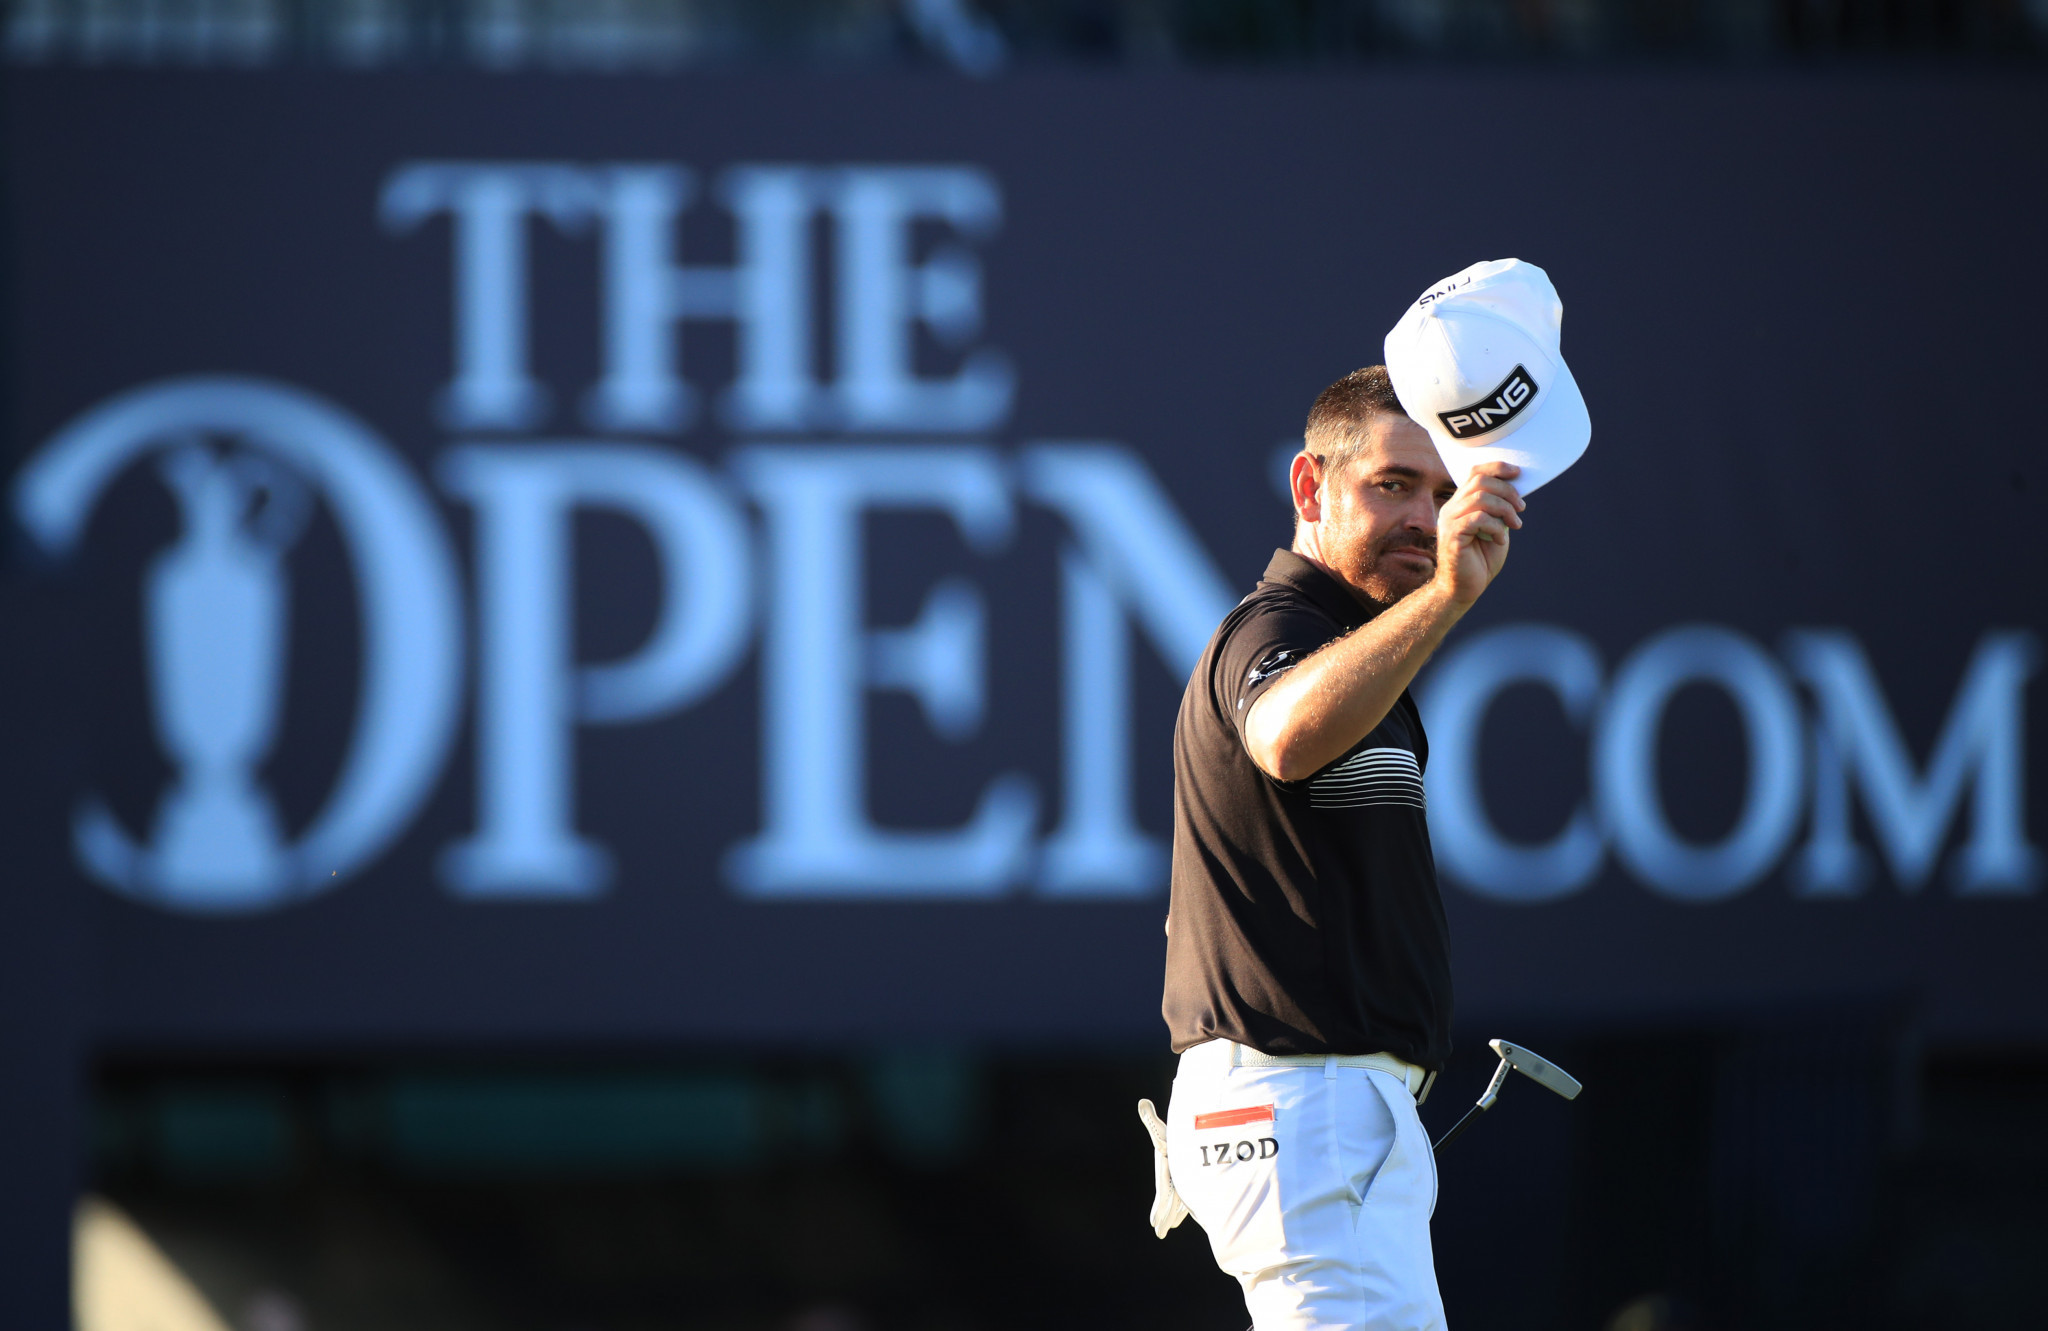 Record-breaking Oosthuizen extends Open lead as Morikawa makes move